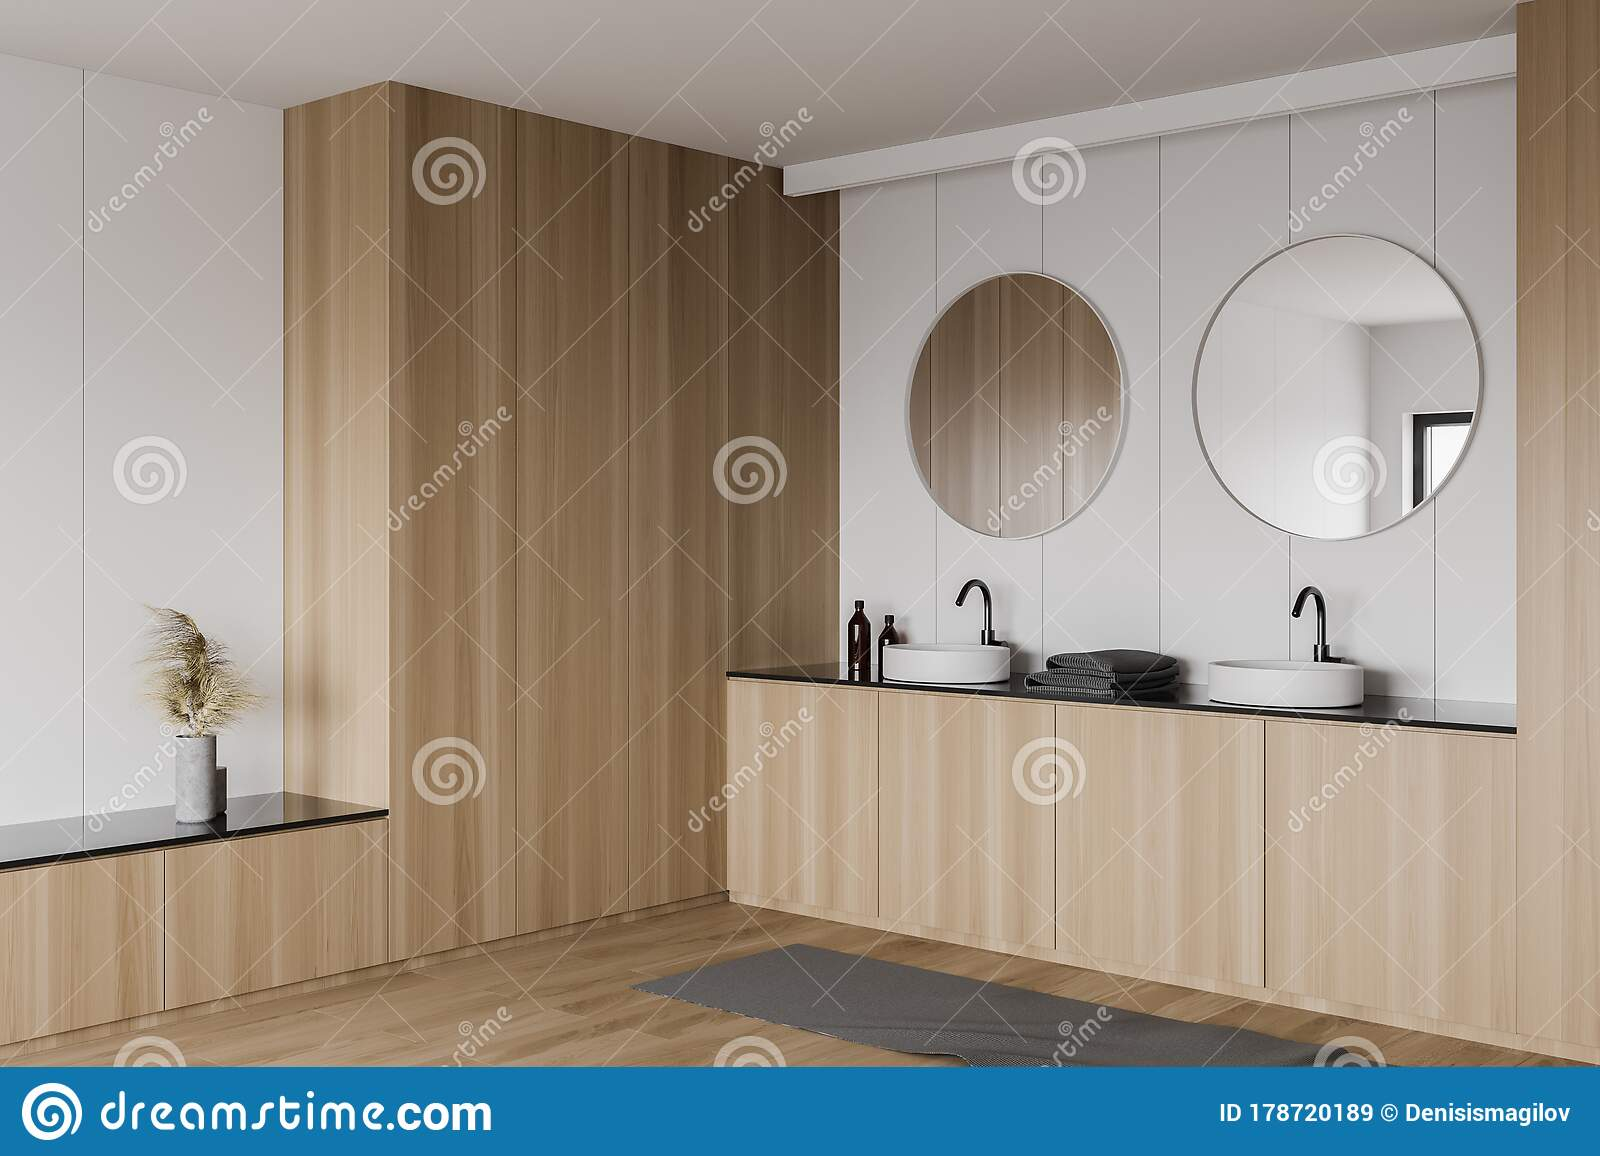 White And Wooden Bathroom Corner With Double Sink Stock Illustration Illustration Of Decoration Double 178720189